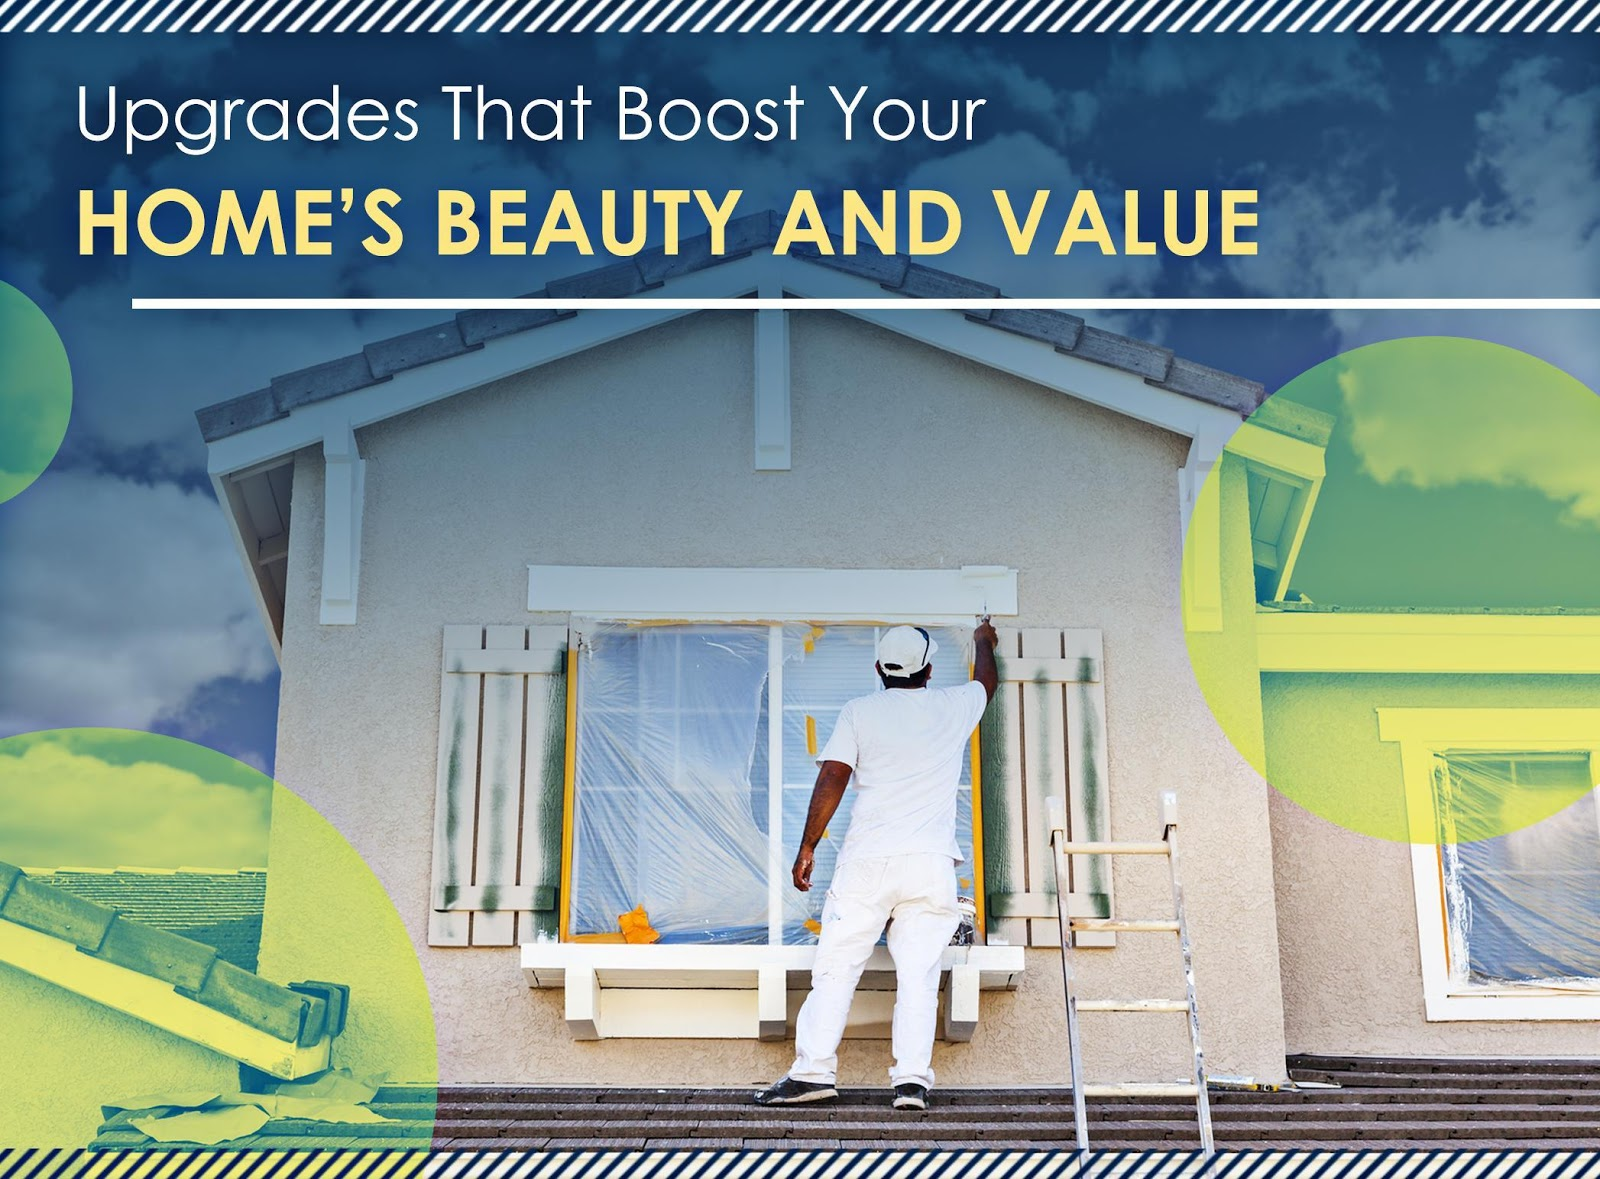 Upgrades That Boost Your Home's Beauty and Value